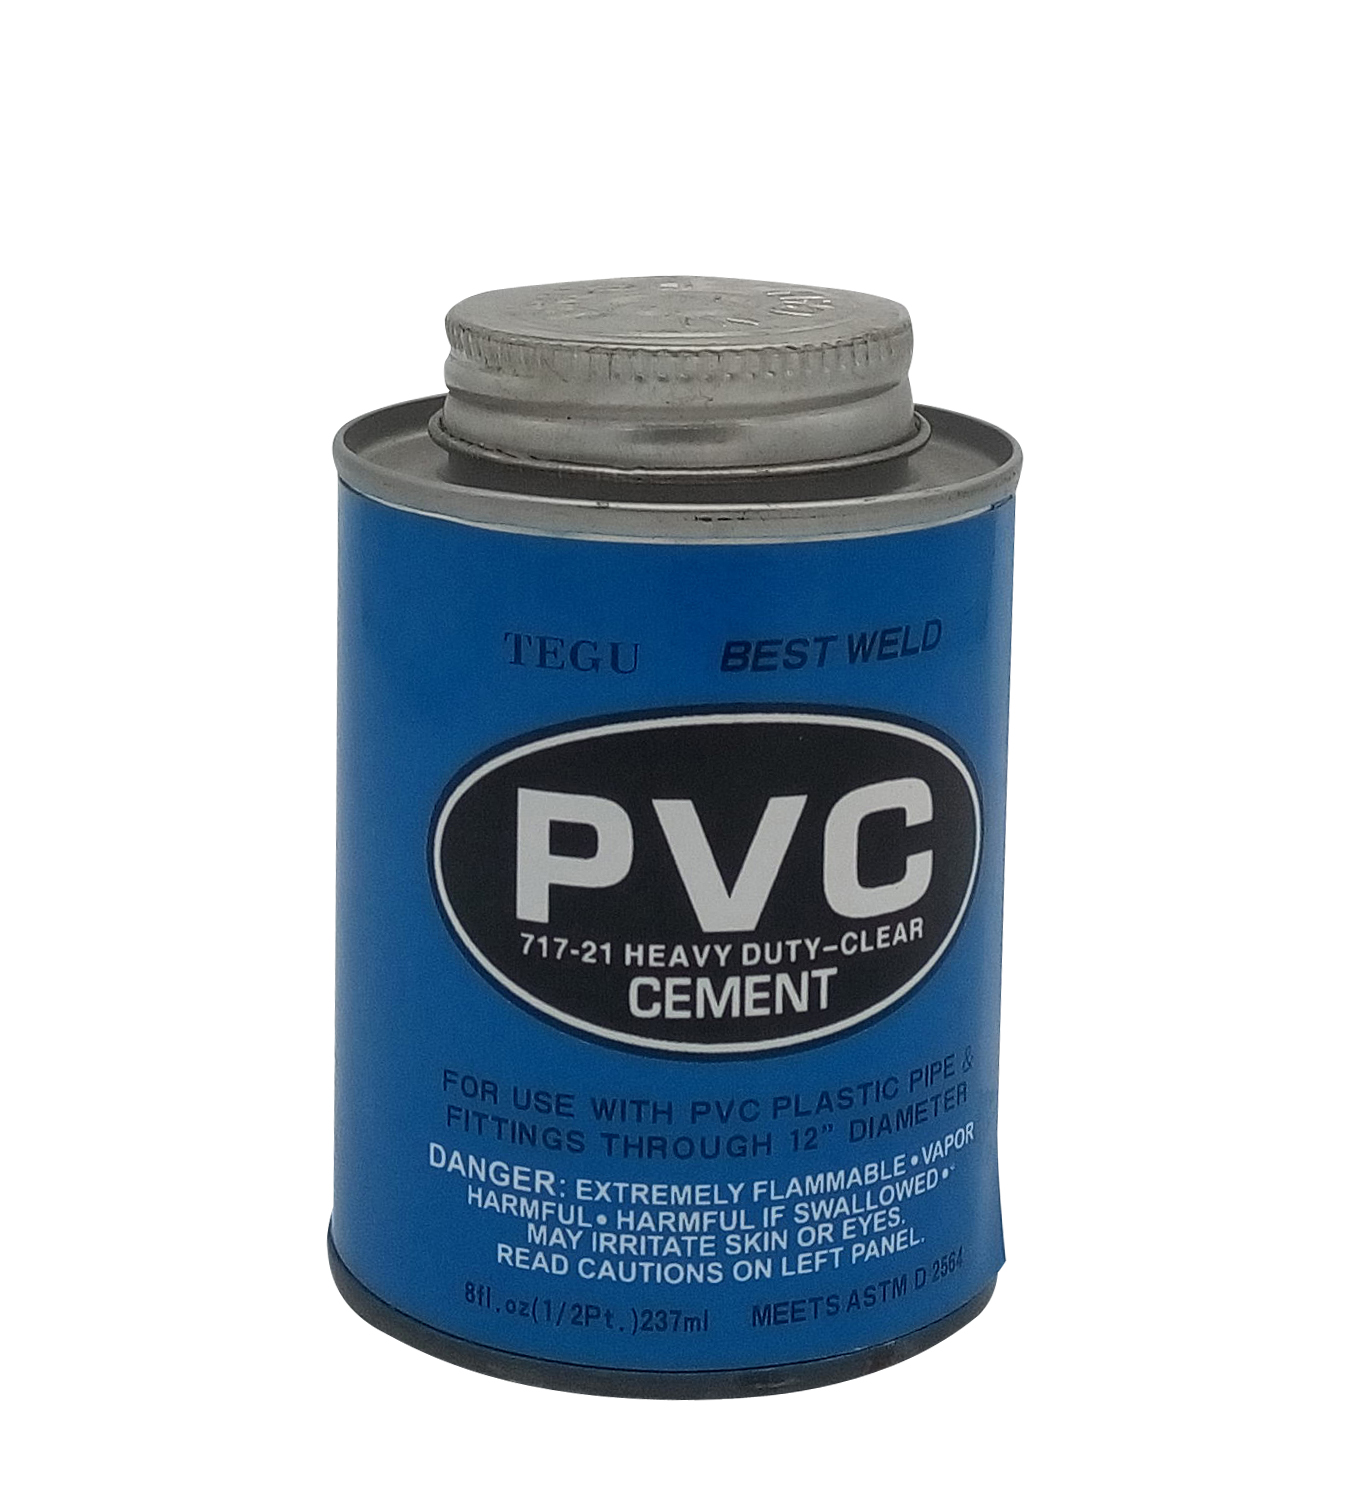 Pvc cpvc pipe fittings cement